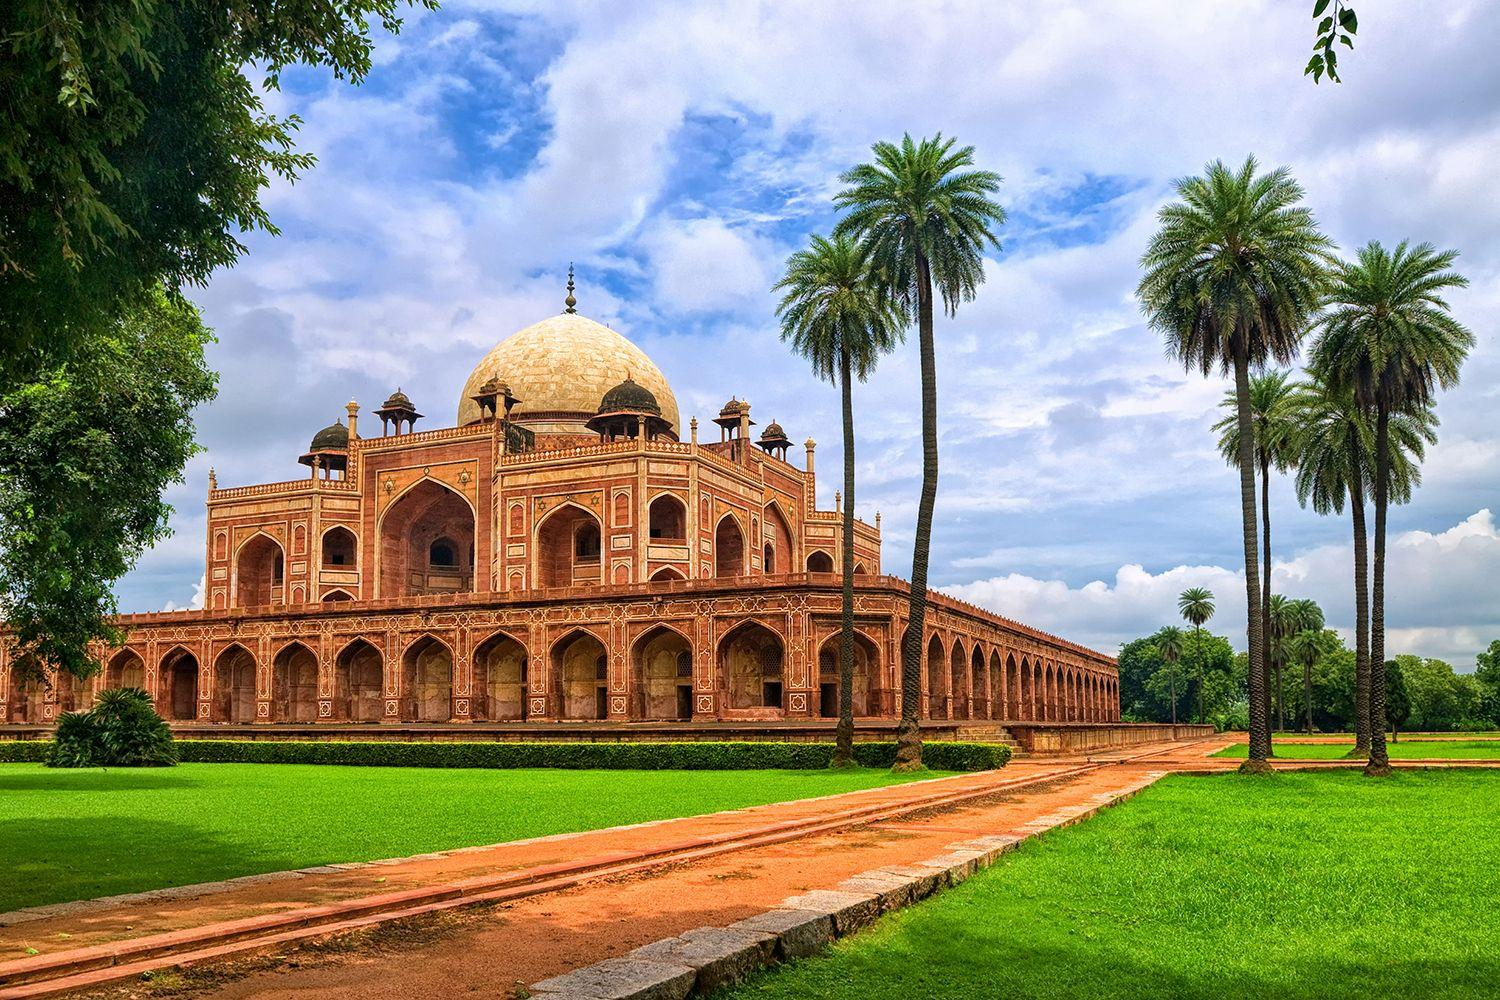 Buy Humayun's Tomb New Delhi Wallpapers Online in India at Best Price